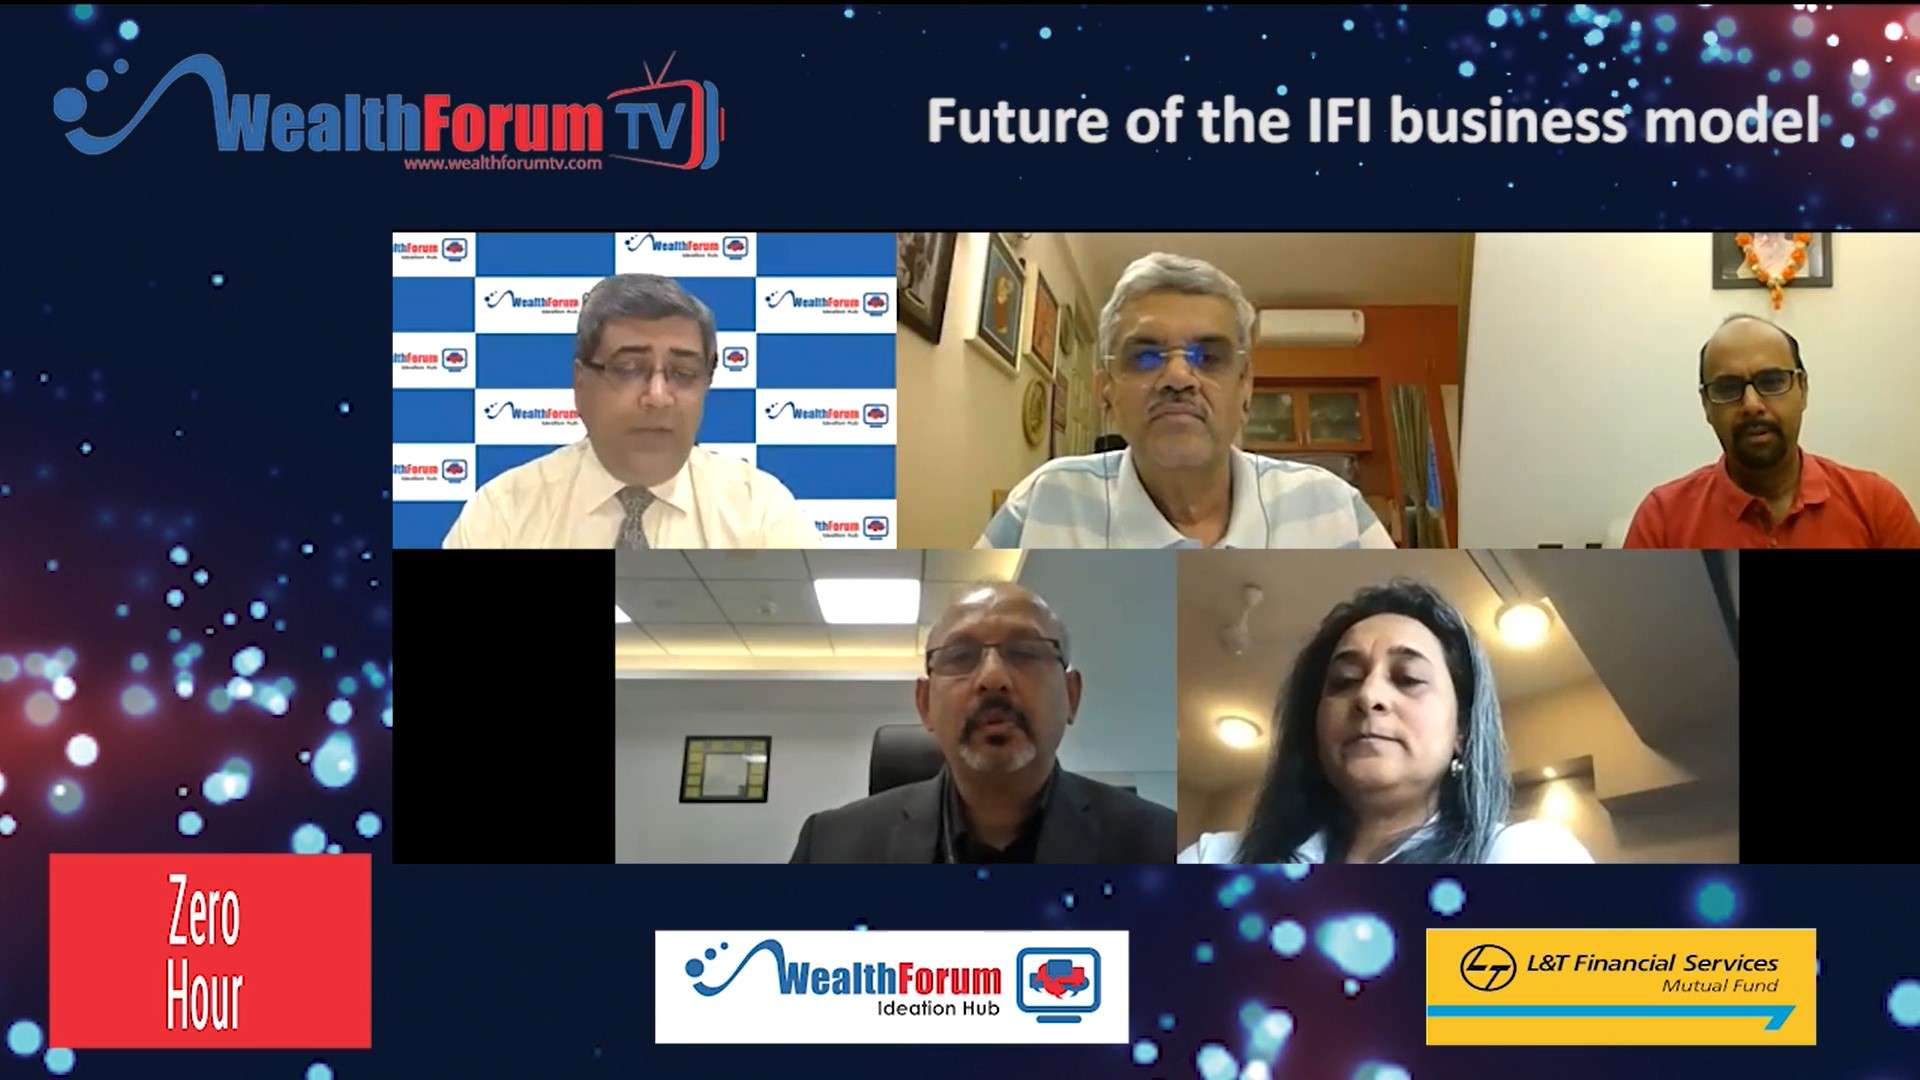 wealth forum tv